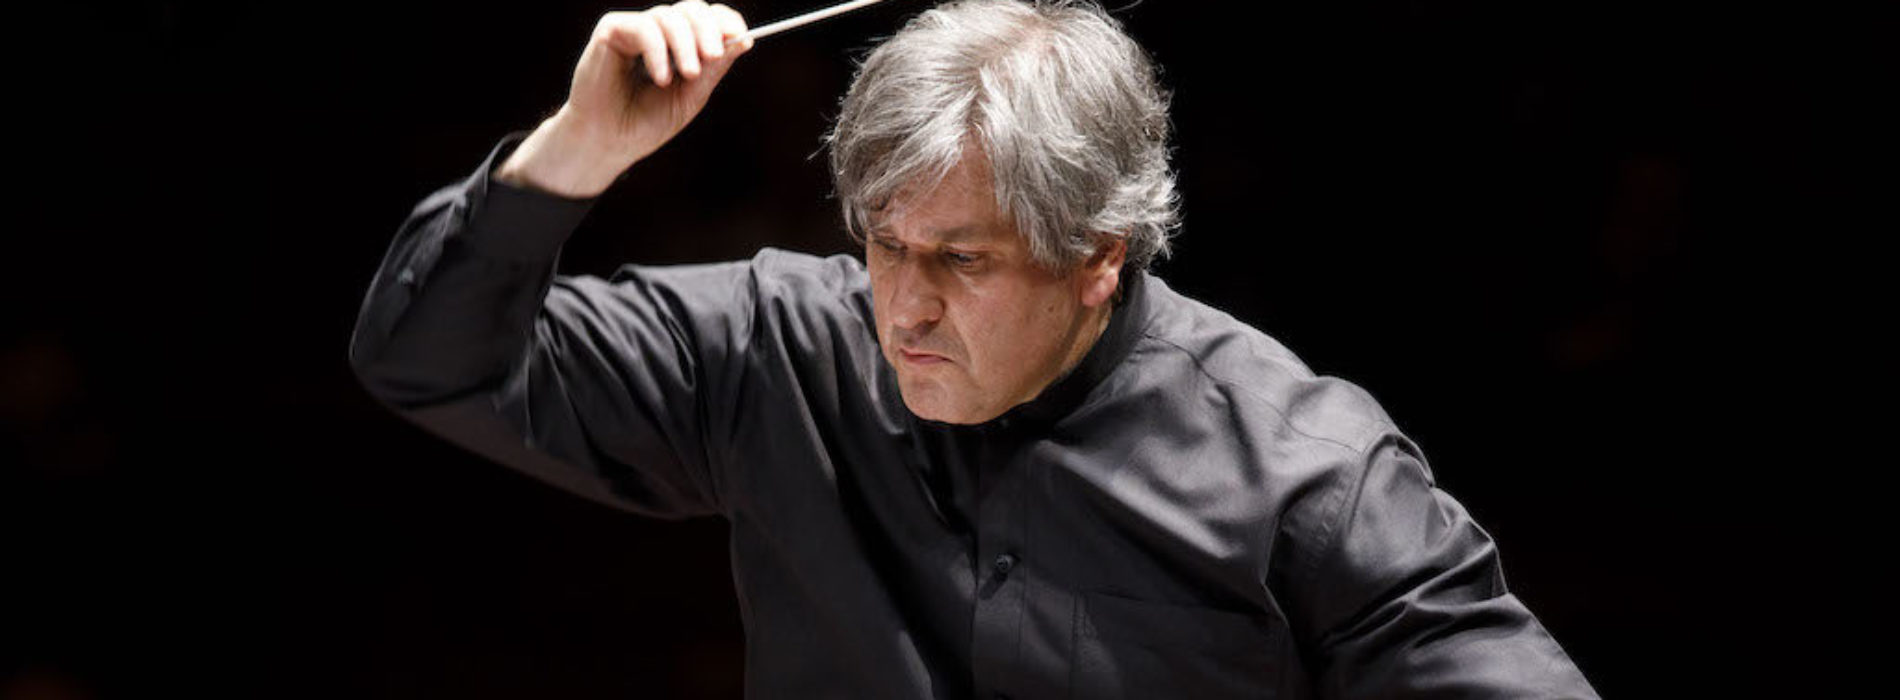 Esordio da star per Un'Estate da Re, sul podio Antonio Pappano